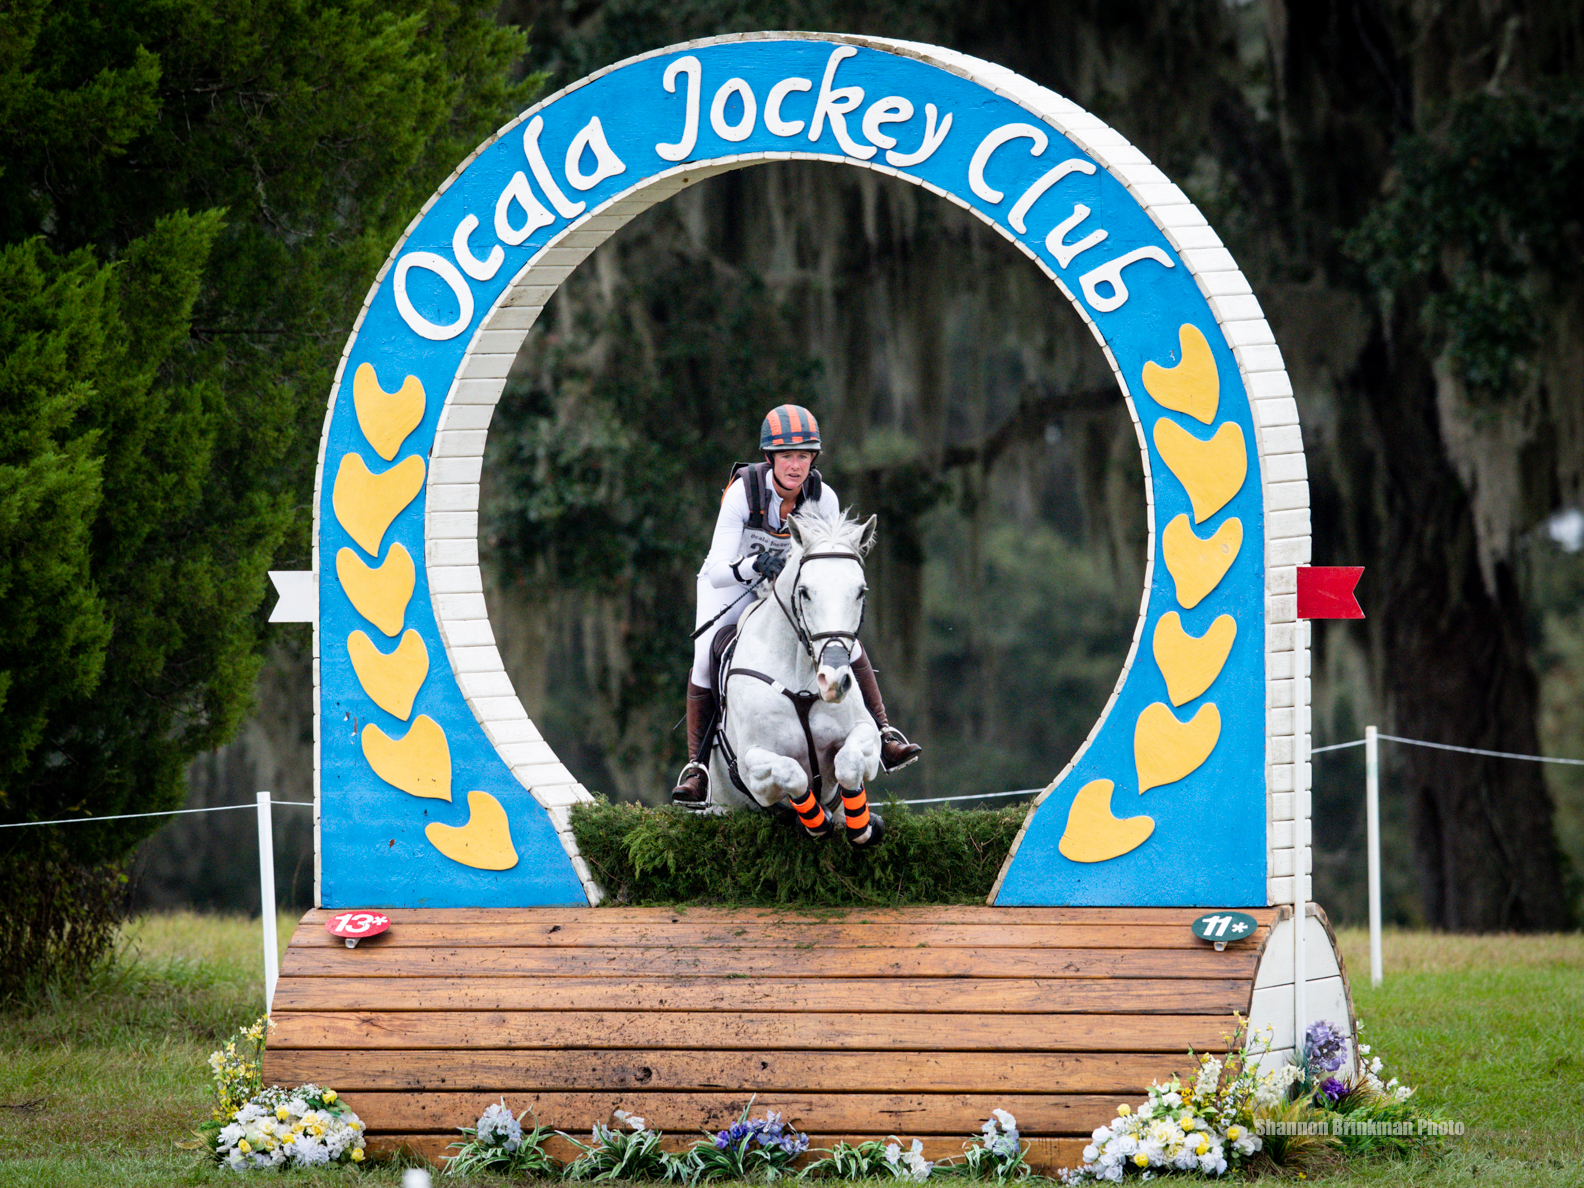 Covid-19 Statement on Status of 2020 Ocala Jockey Club International 3-Day Event - Eventing Nation - Three-Day Eventing News, Results, Videos, and Commentary